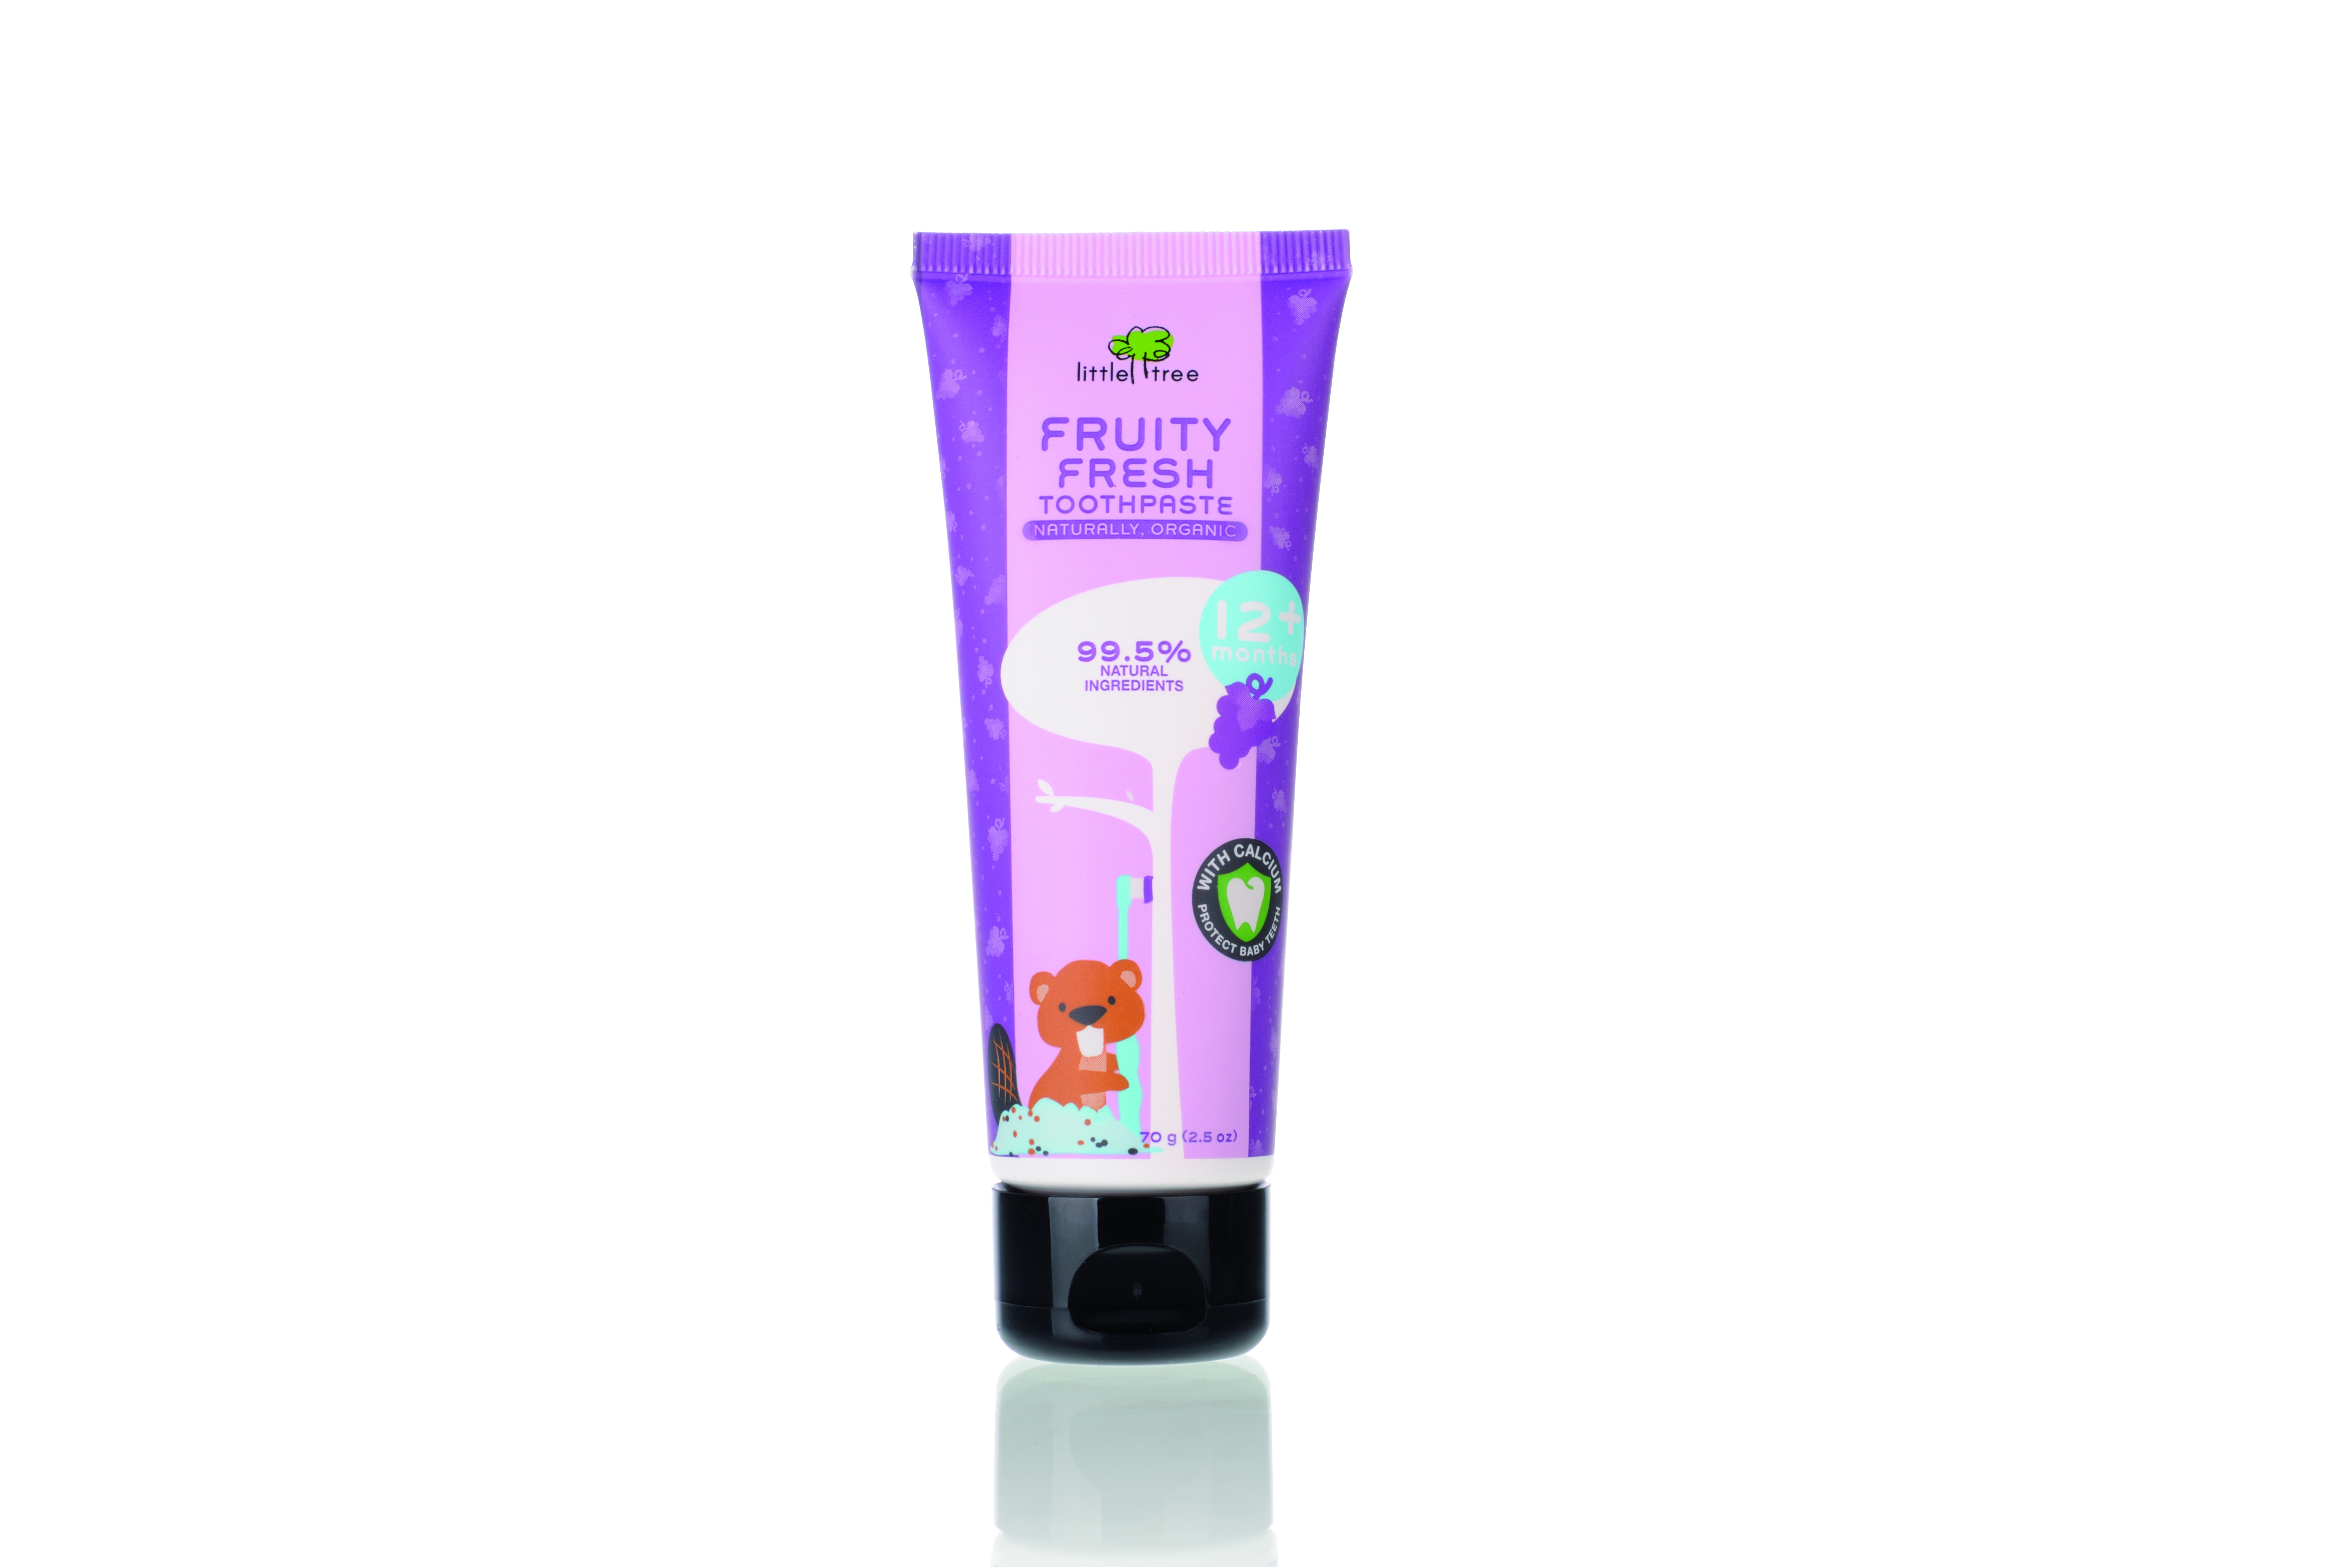 baby-fairLittle Tree Fruity Fresh Toothpaste  -12+months (Grape) 70ml - Bundle Of 2